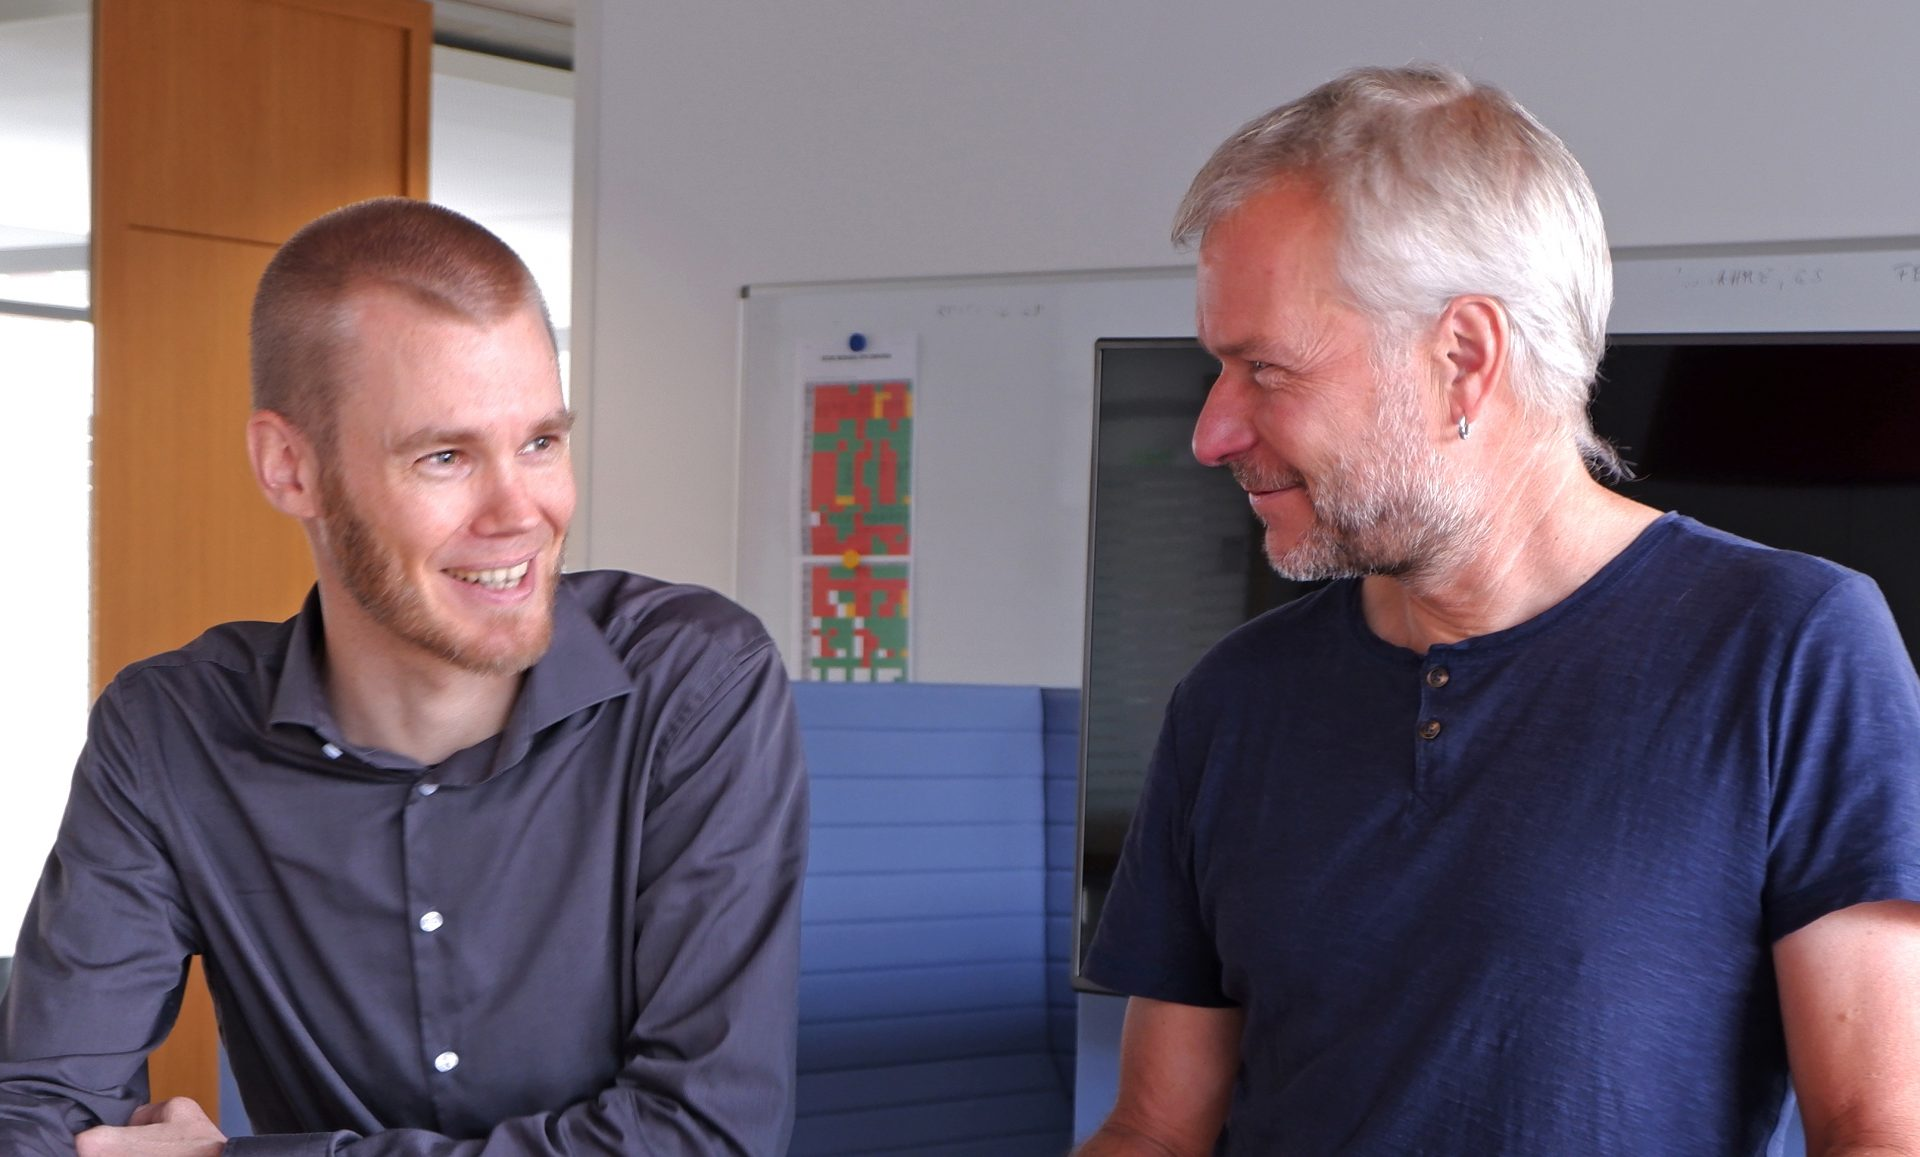 Dieter Schrottshammer and Raphael Schnückel are now jointly taking care of the third graduation project at our company.